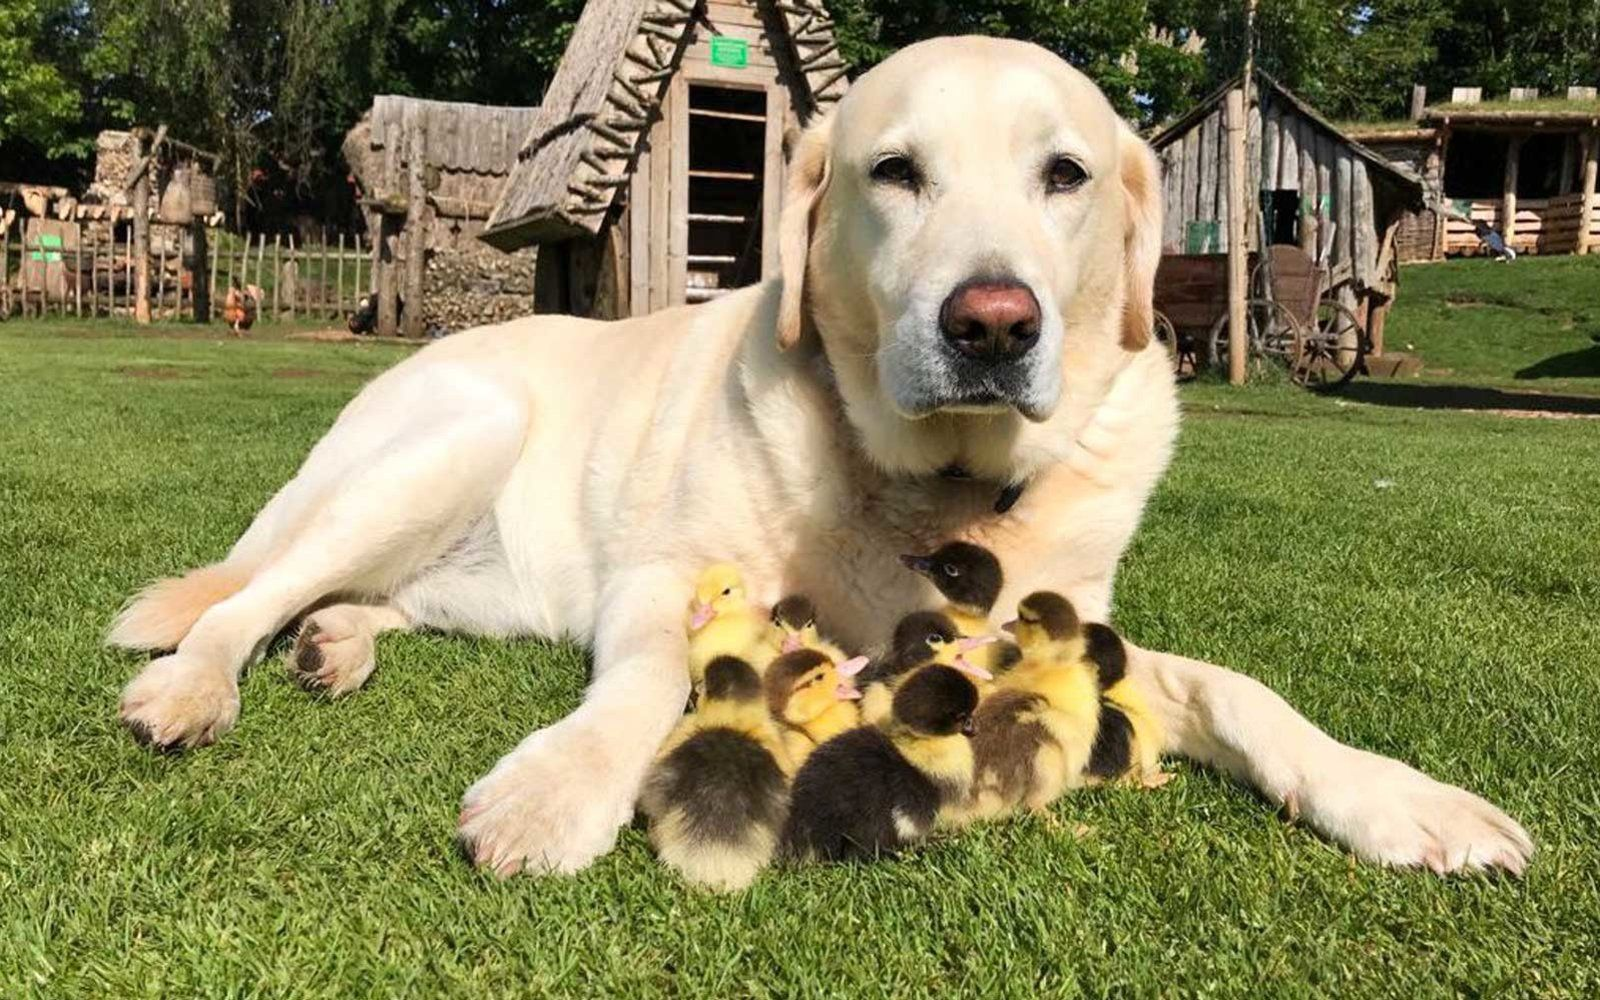 This Labrador Adopted These 9 Ducklings And Now They All Live Happily Ever After In A Castle